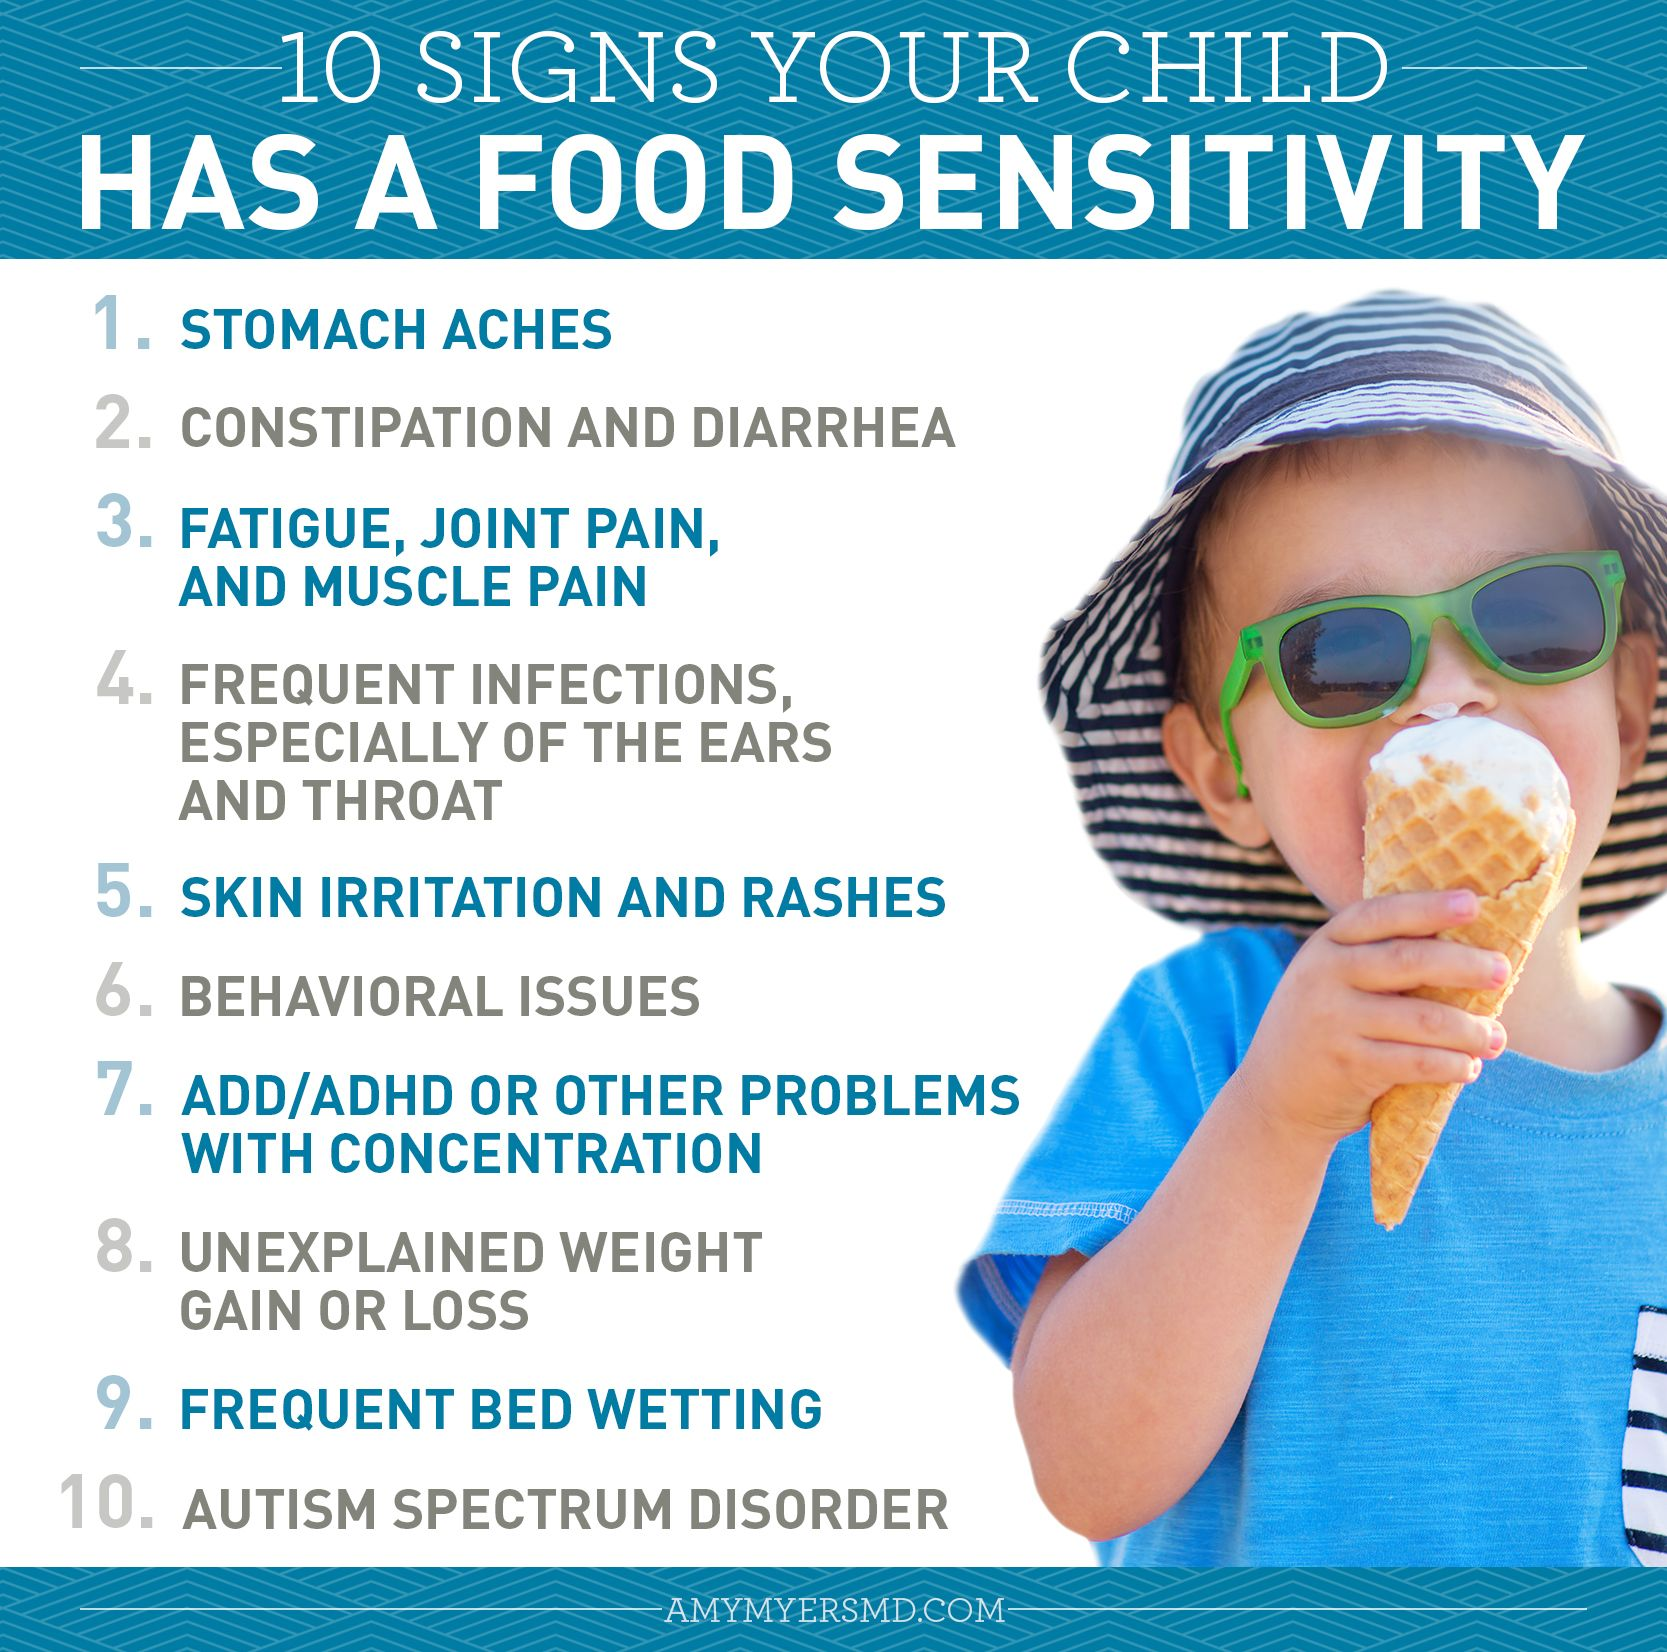 10 Signs Your Child Has a Food Sensitivity and What to Do